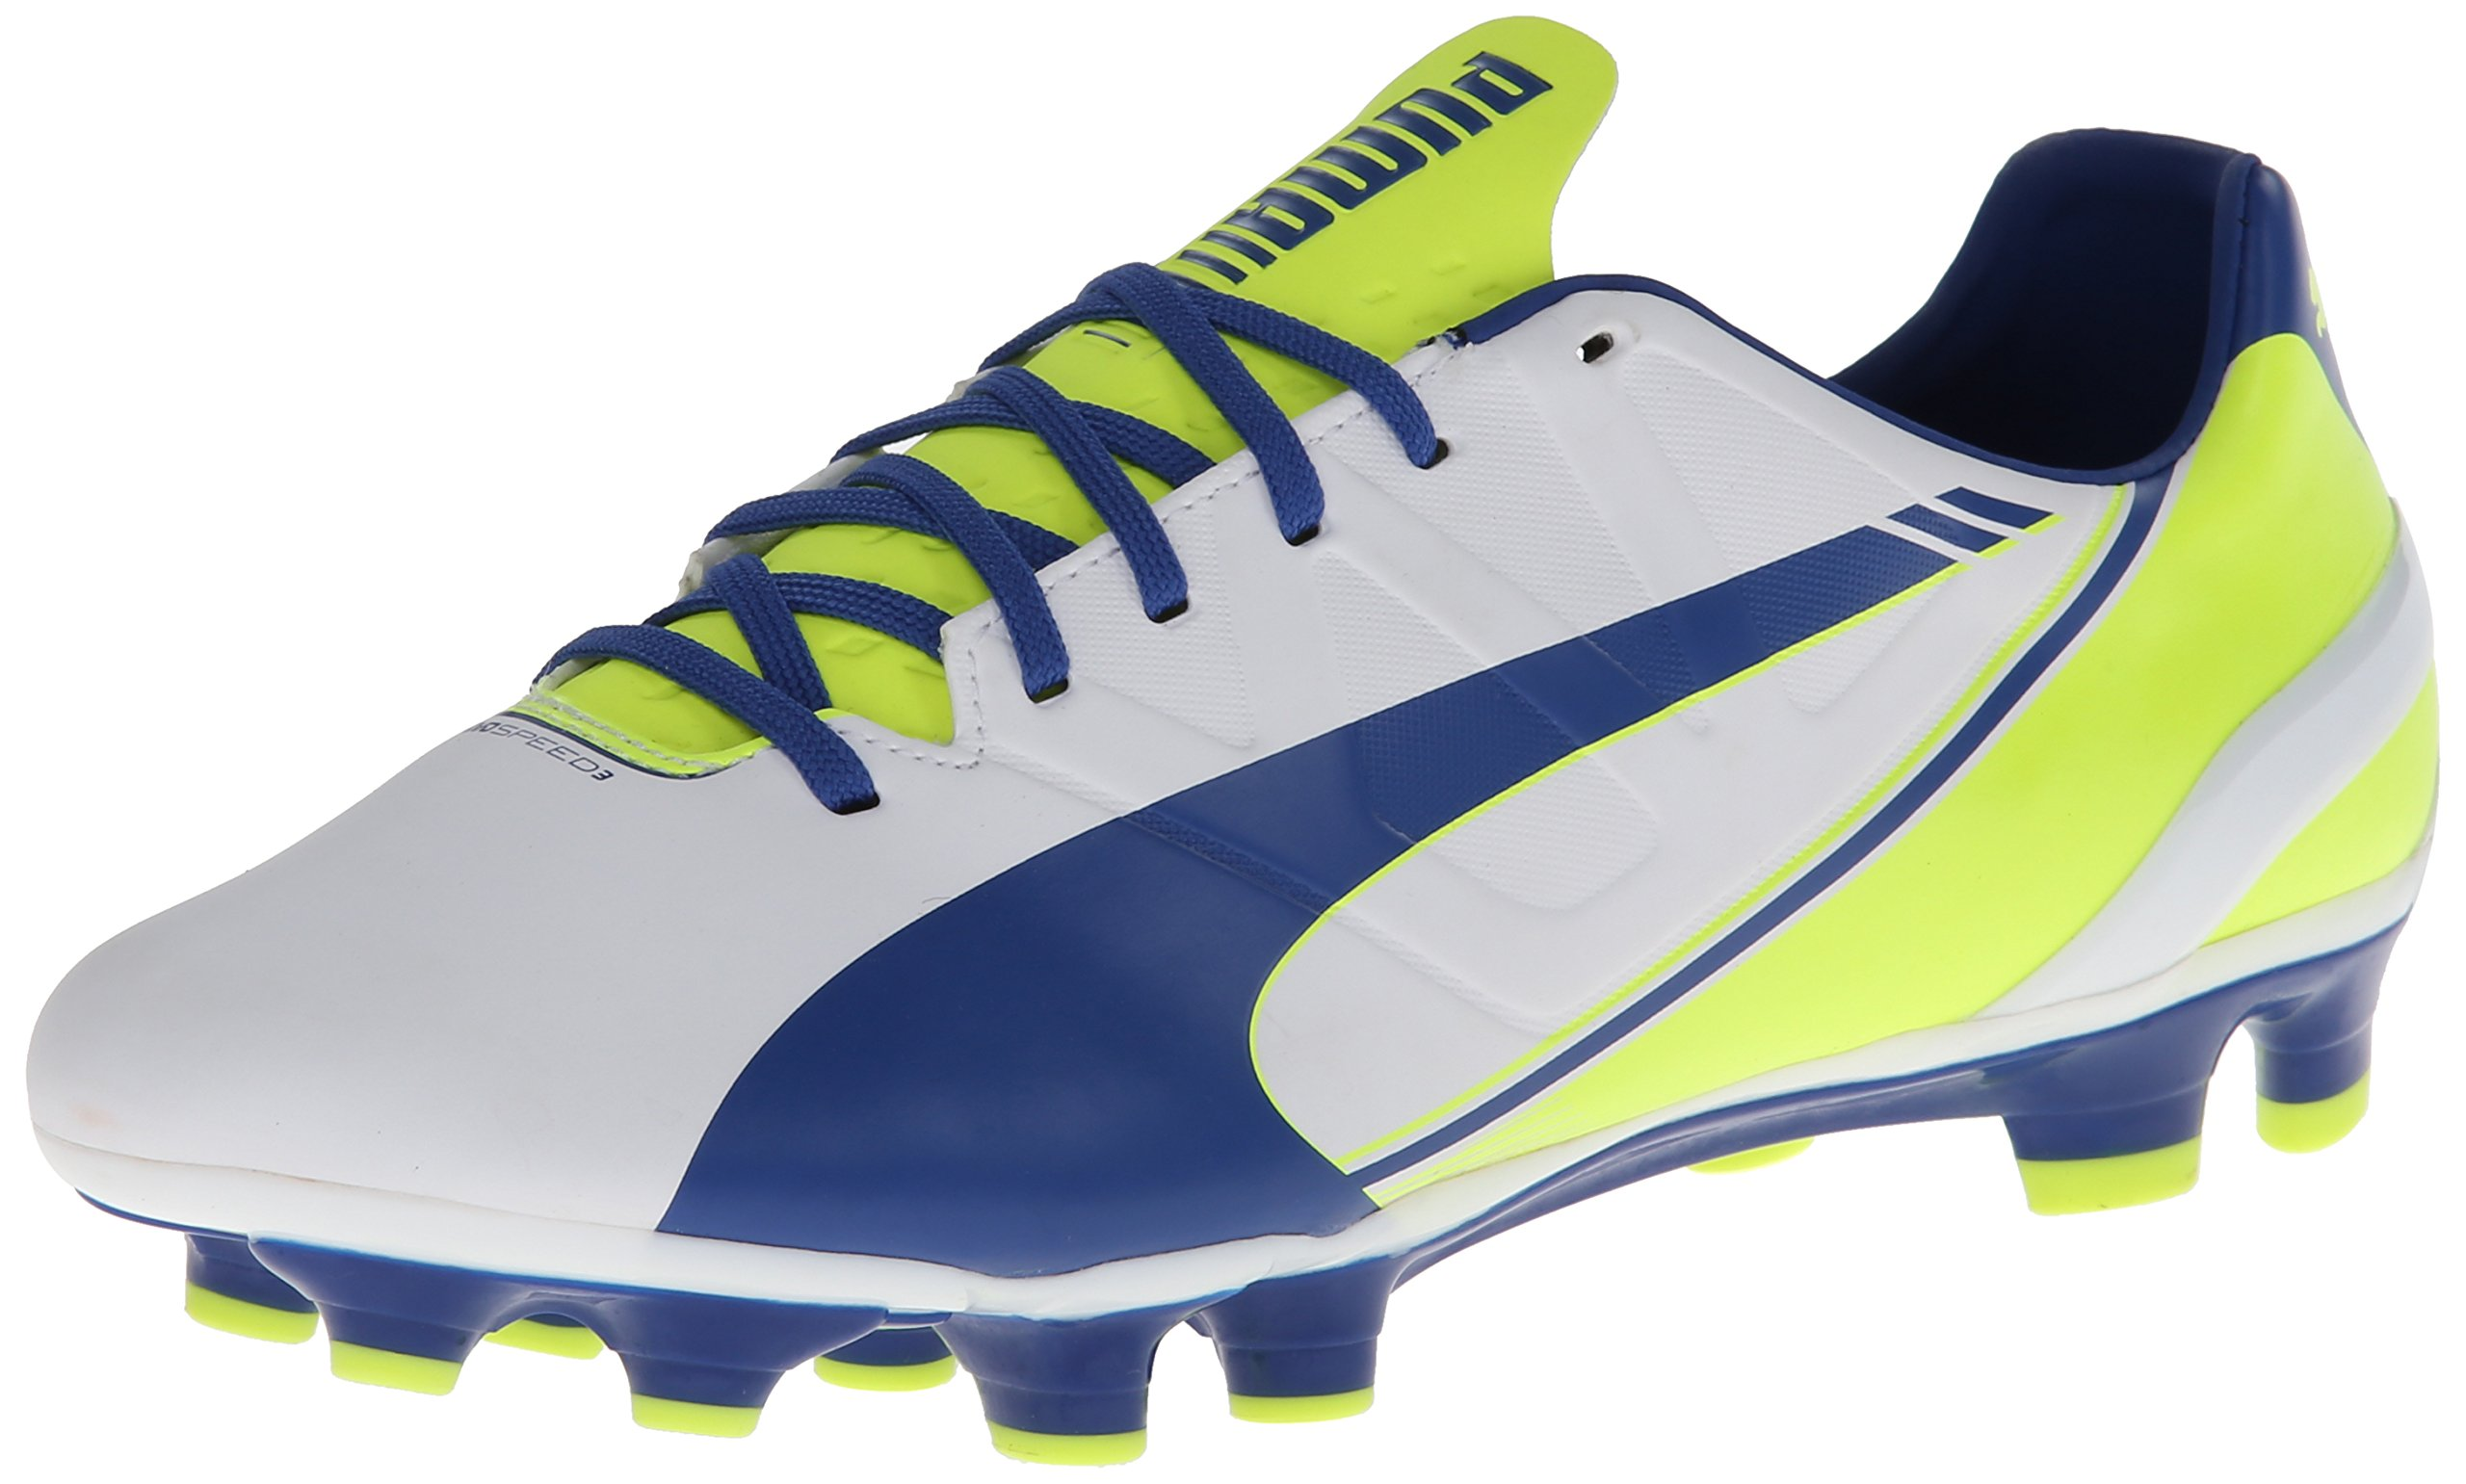 PUMA Women's Evo Speed 3.3 Firm Ground Soccer Shoe,White/Snorkel Blue/Fluorescent Yellow,8 B US